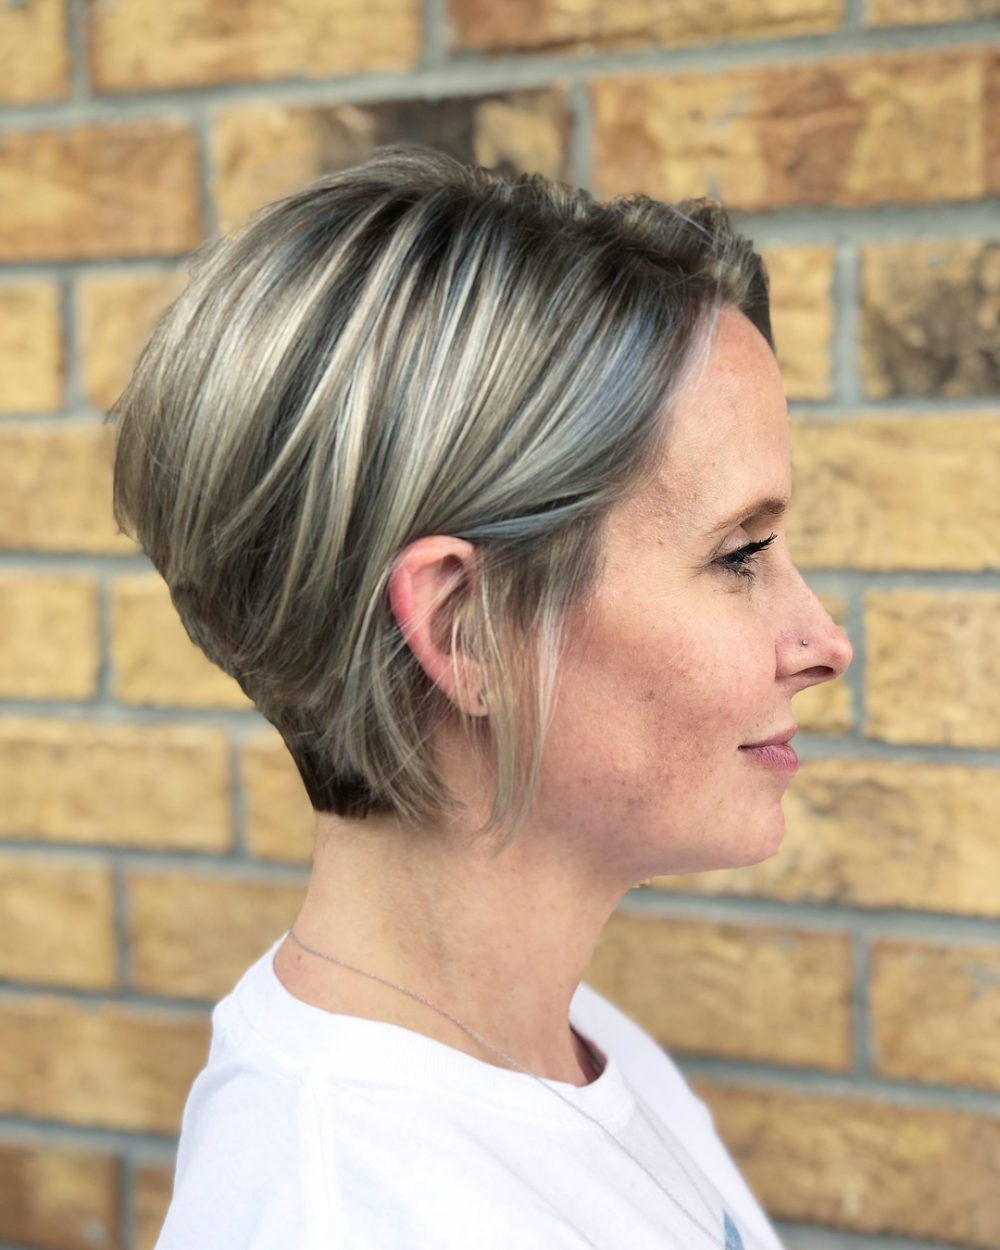 42 Sexiest Short Hairstyles For Women Over 40 In 2018 Pertaining To Short Trendy Hairstyles For Women (View 18 of 25)